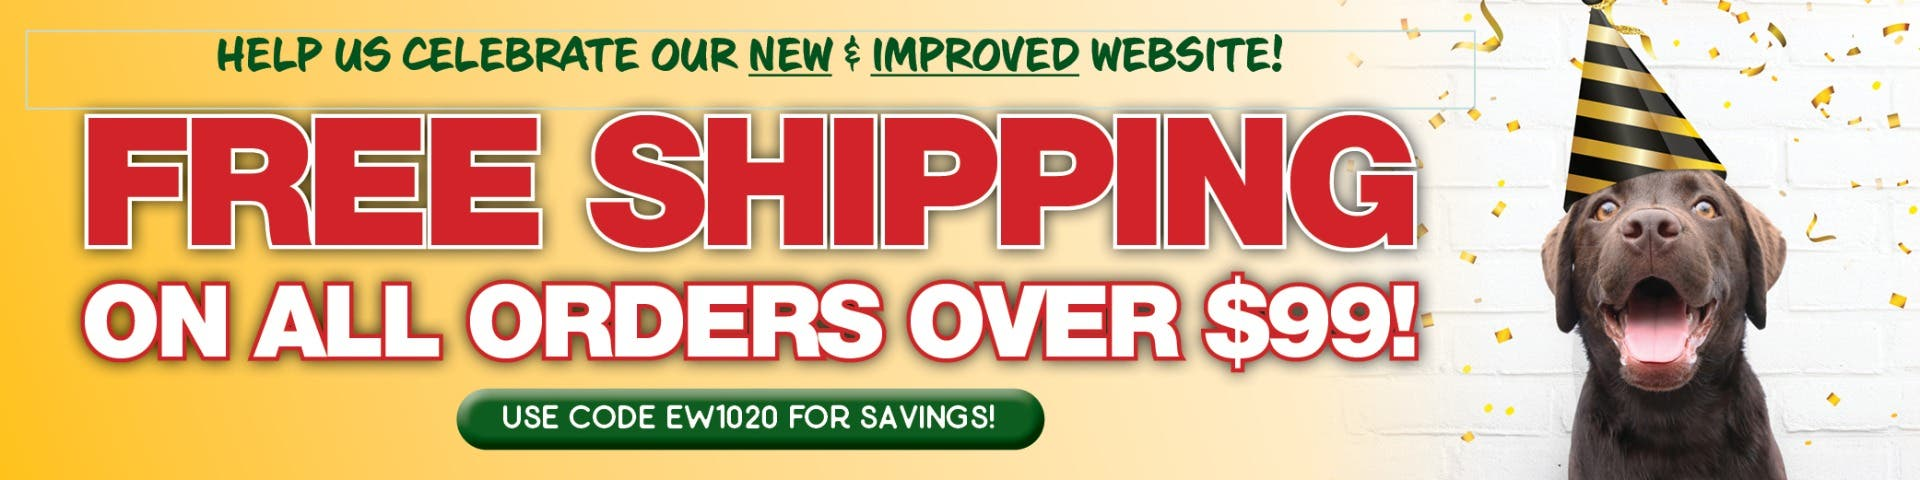 Help us celebrate our new and improved website. Free shipping on all order over $99.